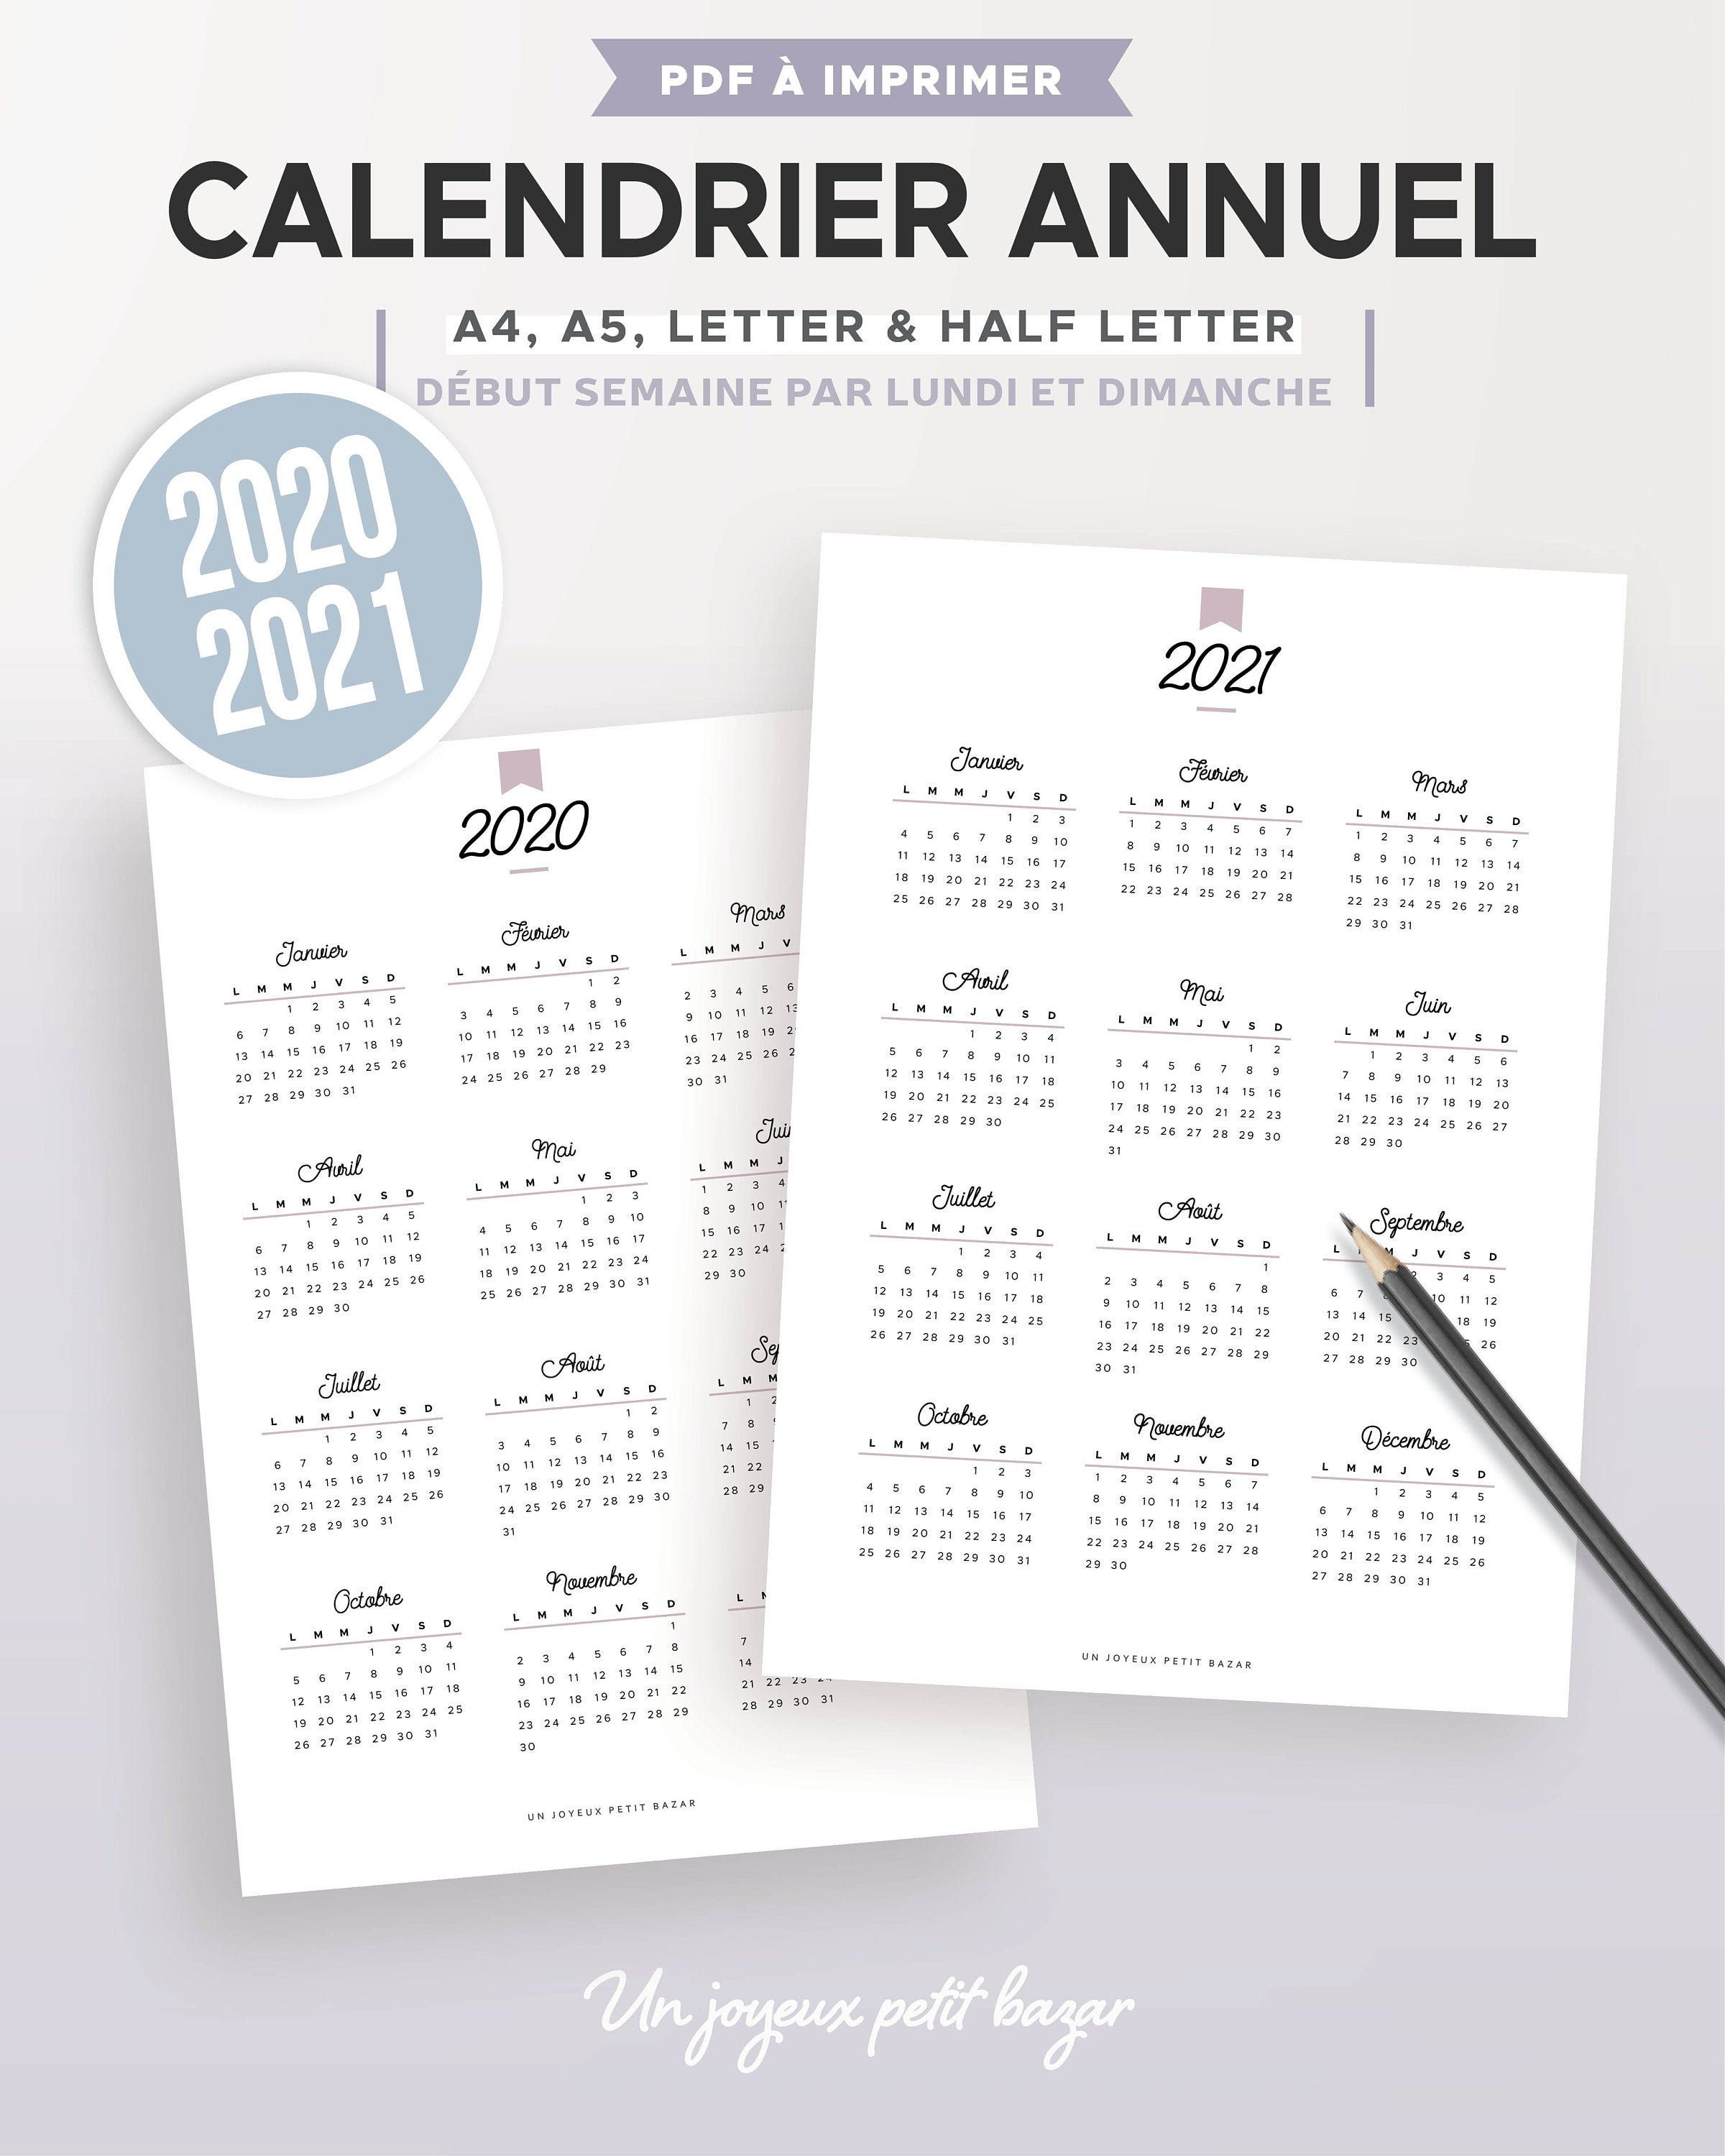 Planning Calendrier 2021 Pin on PLANNER / AGENDA / DIARY